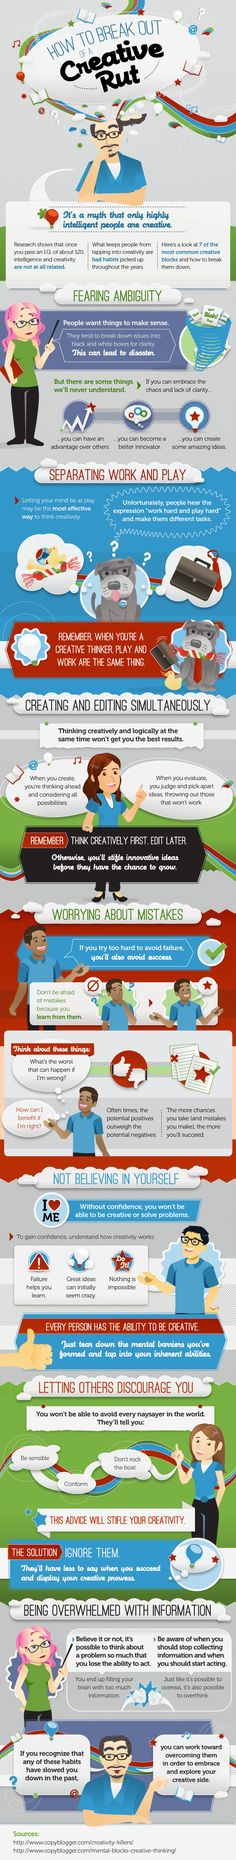 How To Break Out Of A Creative Rut #infographic